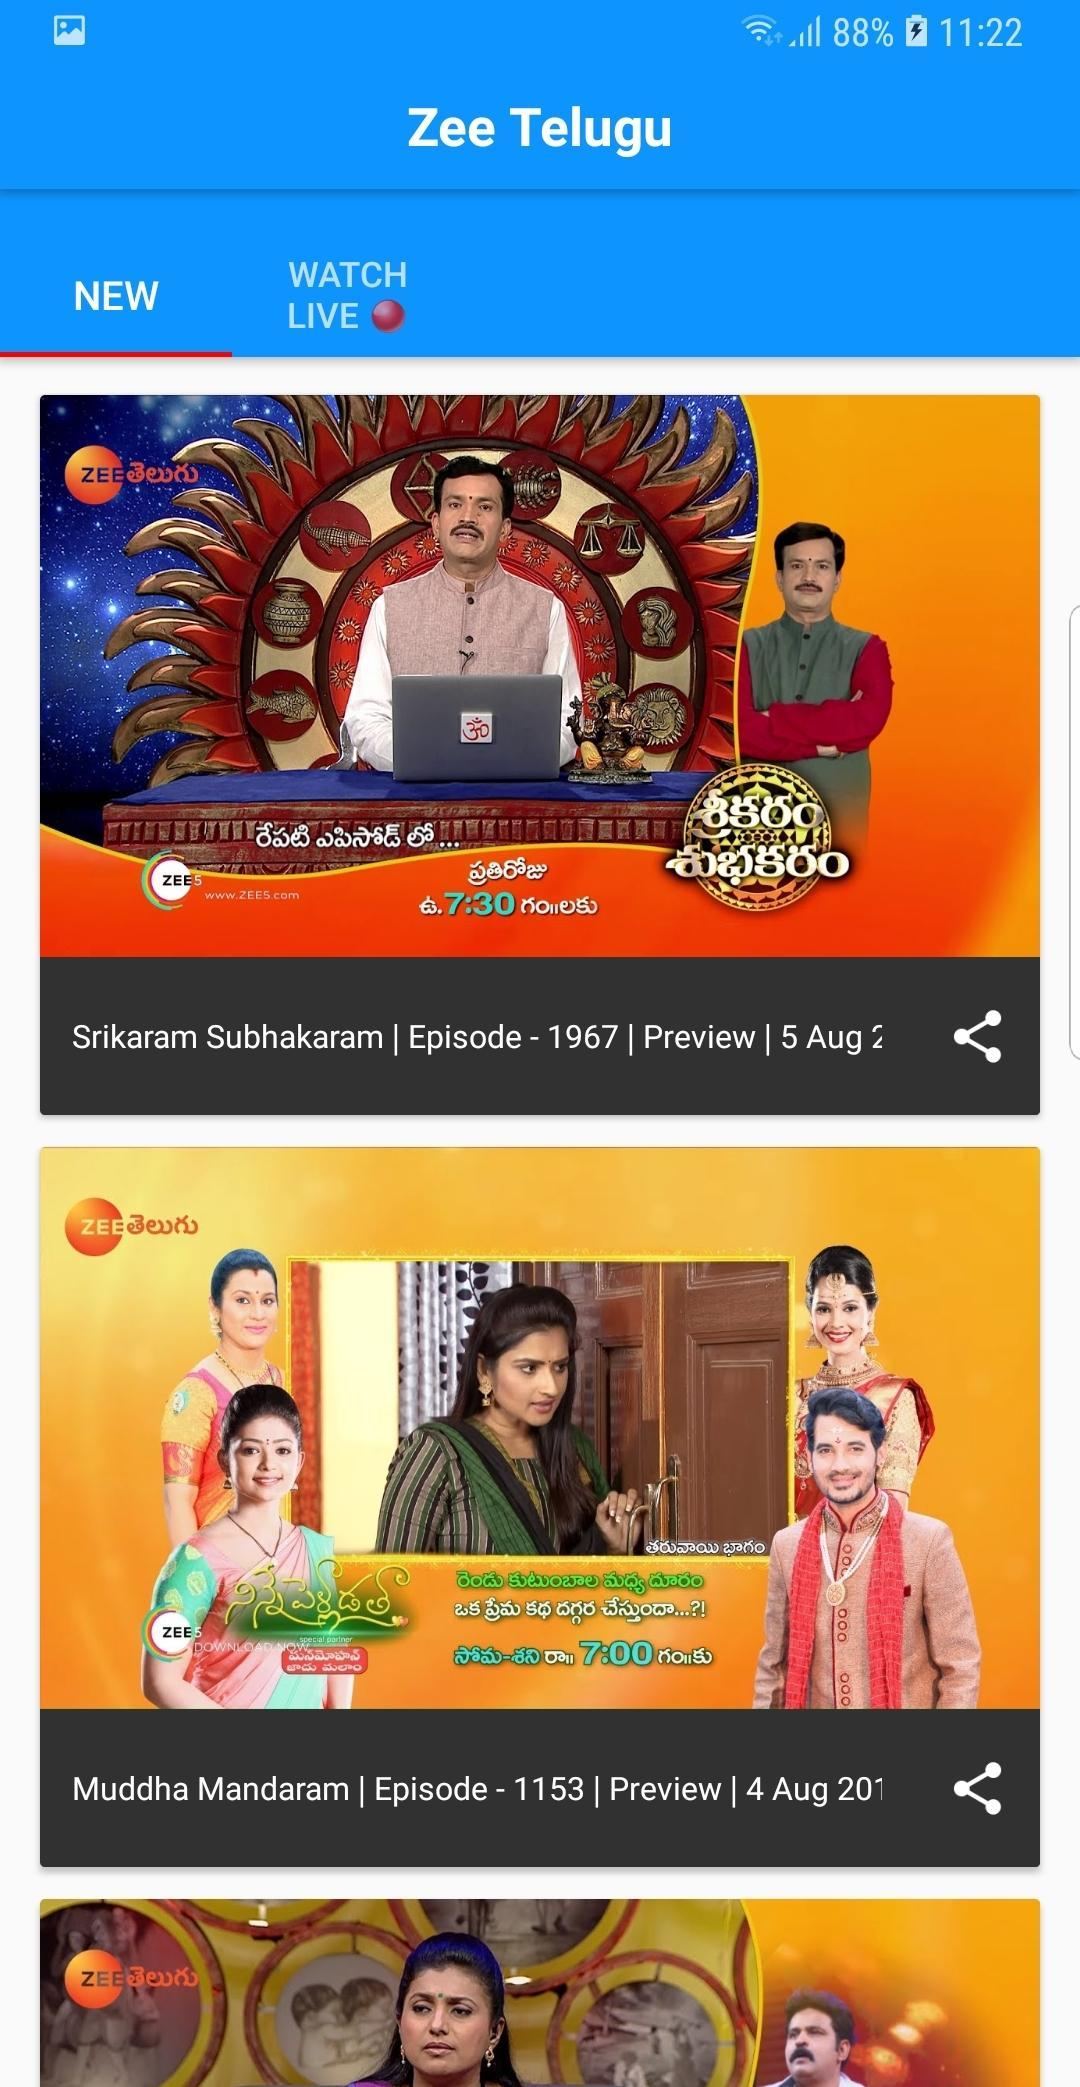 Zee Telugu App for Android - APK Download